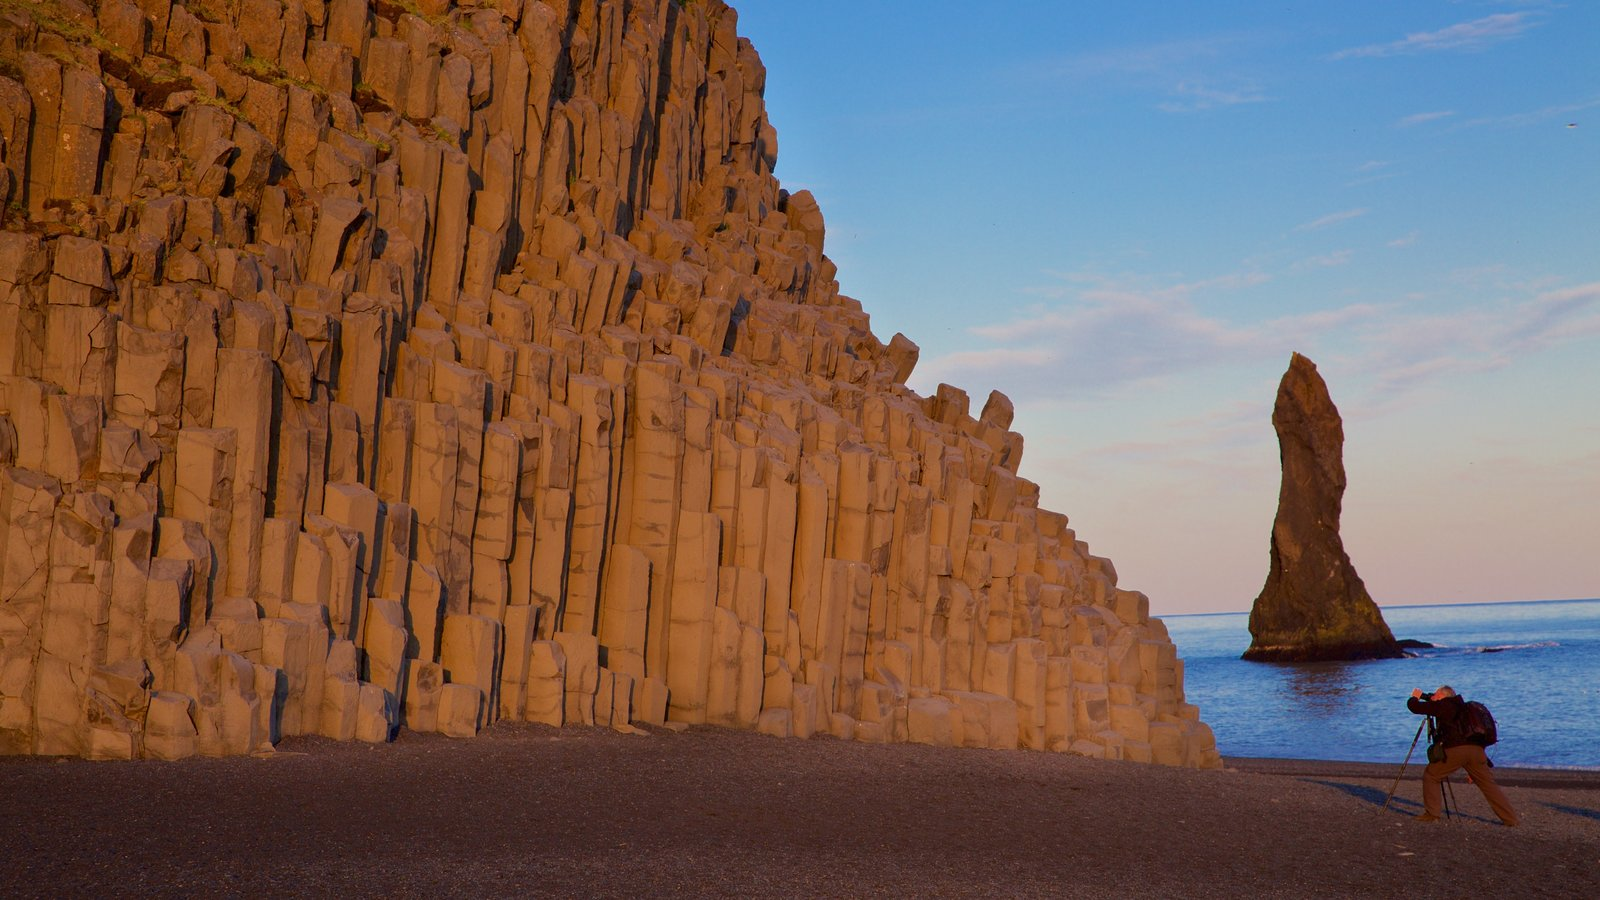 Reynisdrangar showing rocky coastline and a sunset as well as an individual male